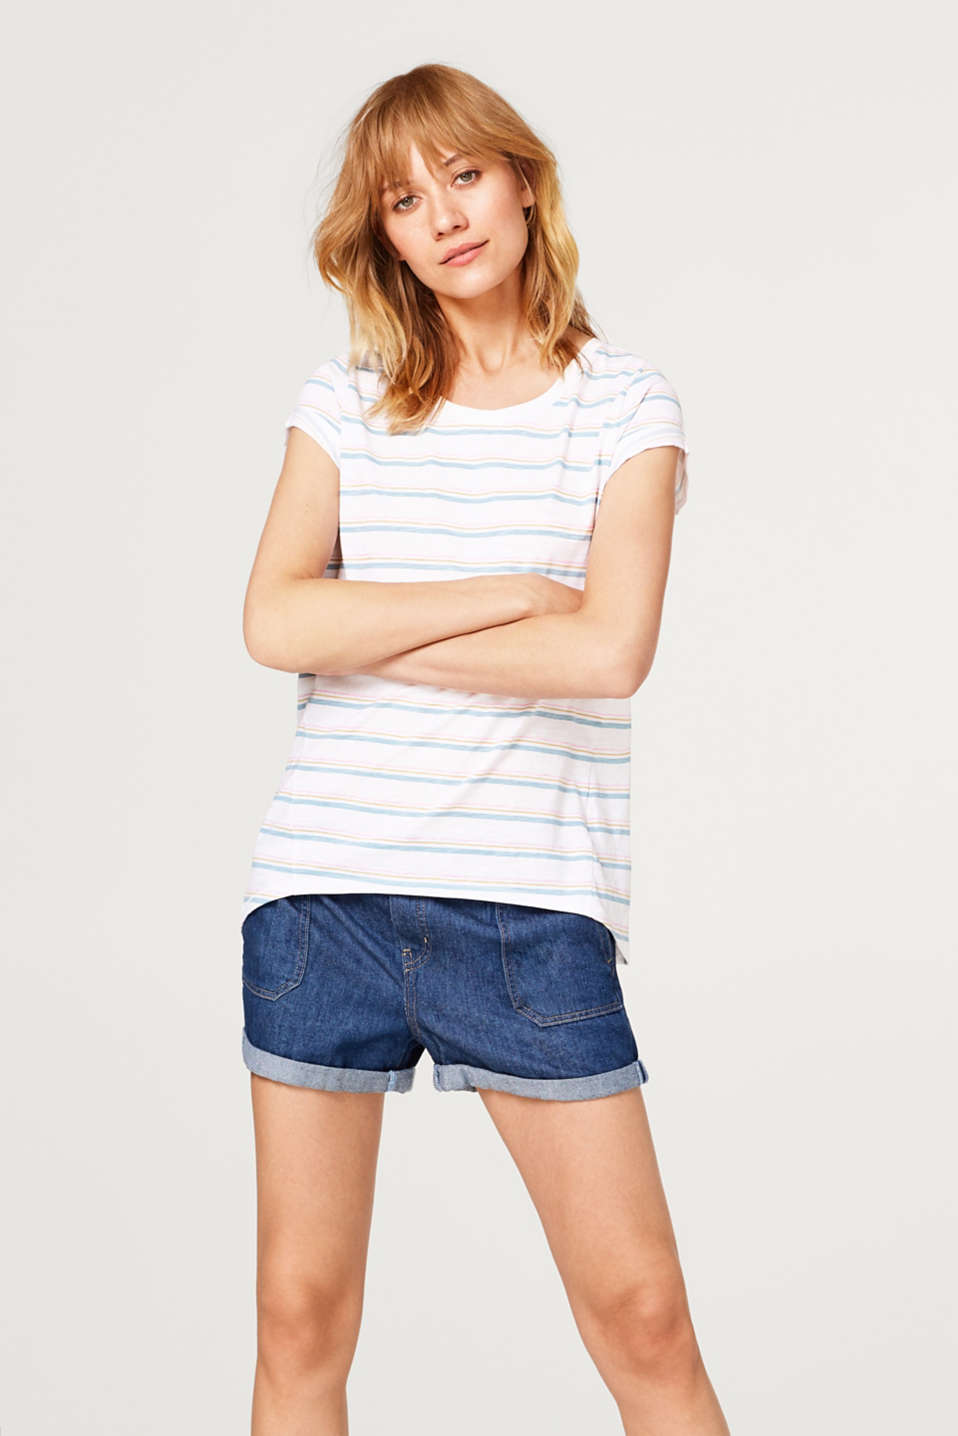 edc - Slub T-shirt with a striped pattern, 100% cotton